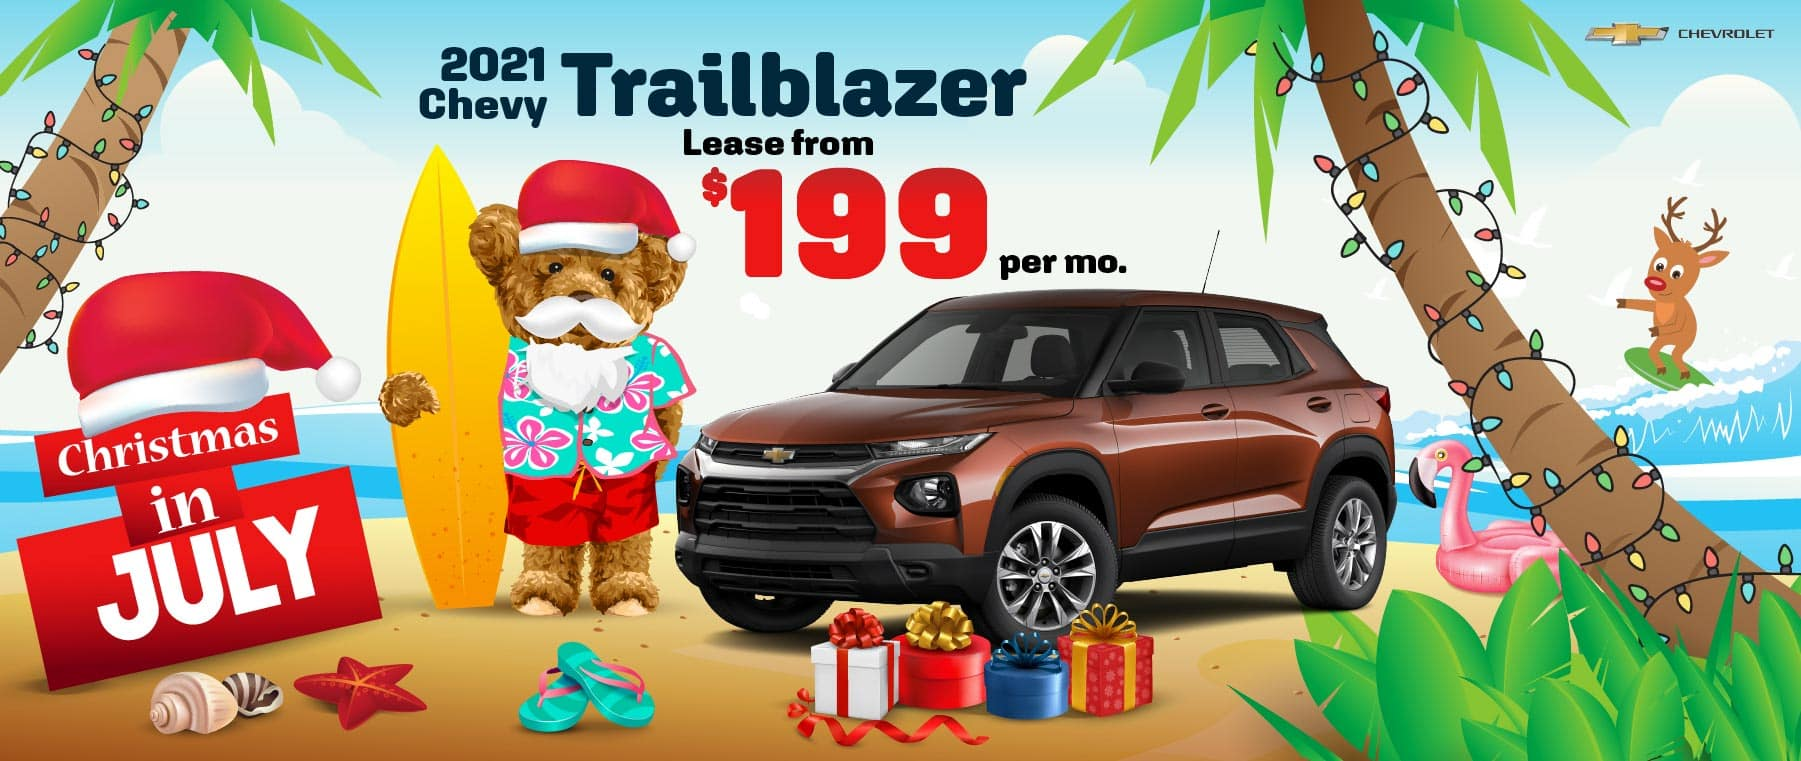 2021 Chevy Trailblazer - lease from $199 per month